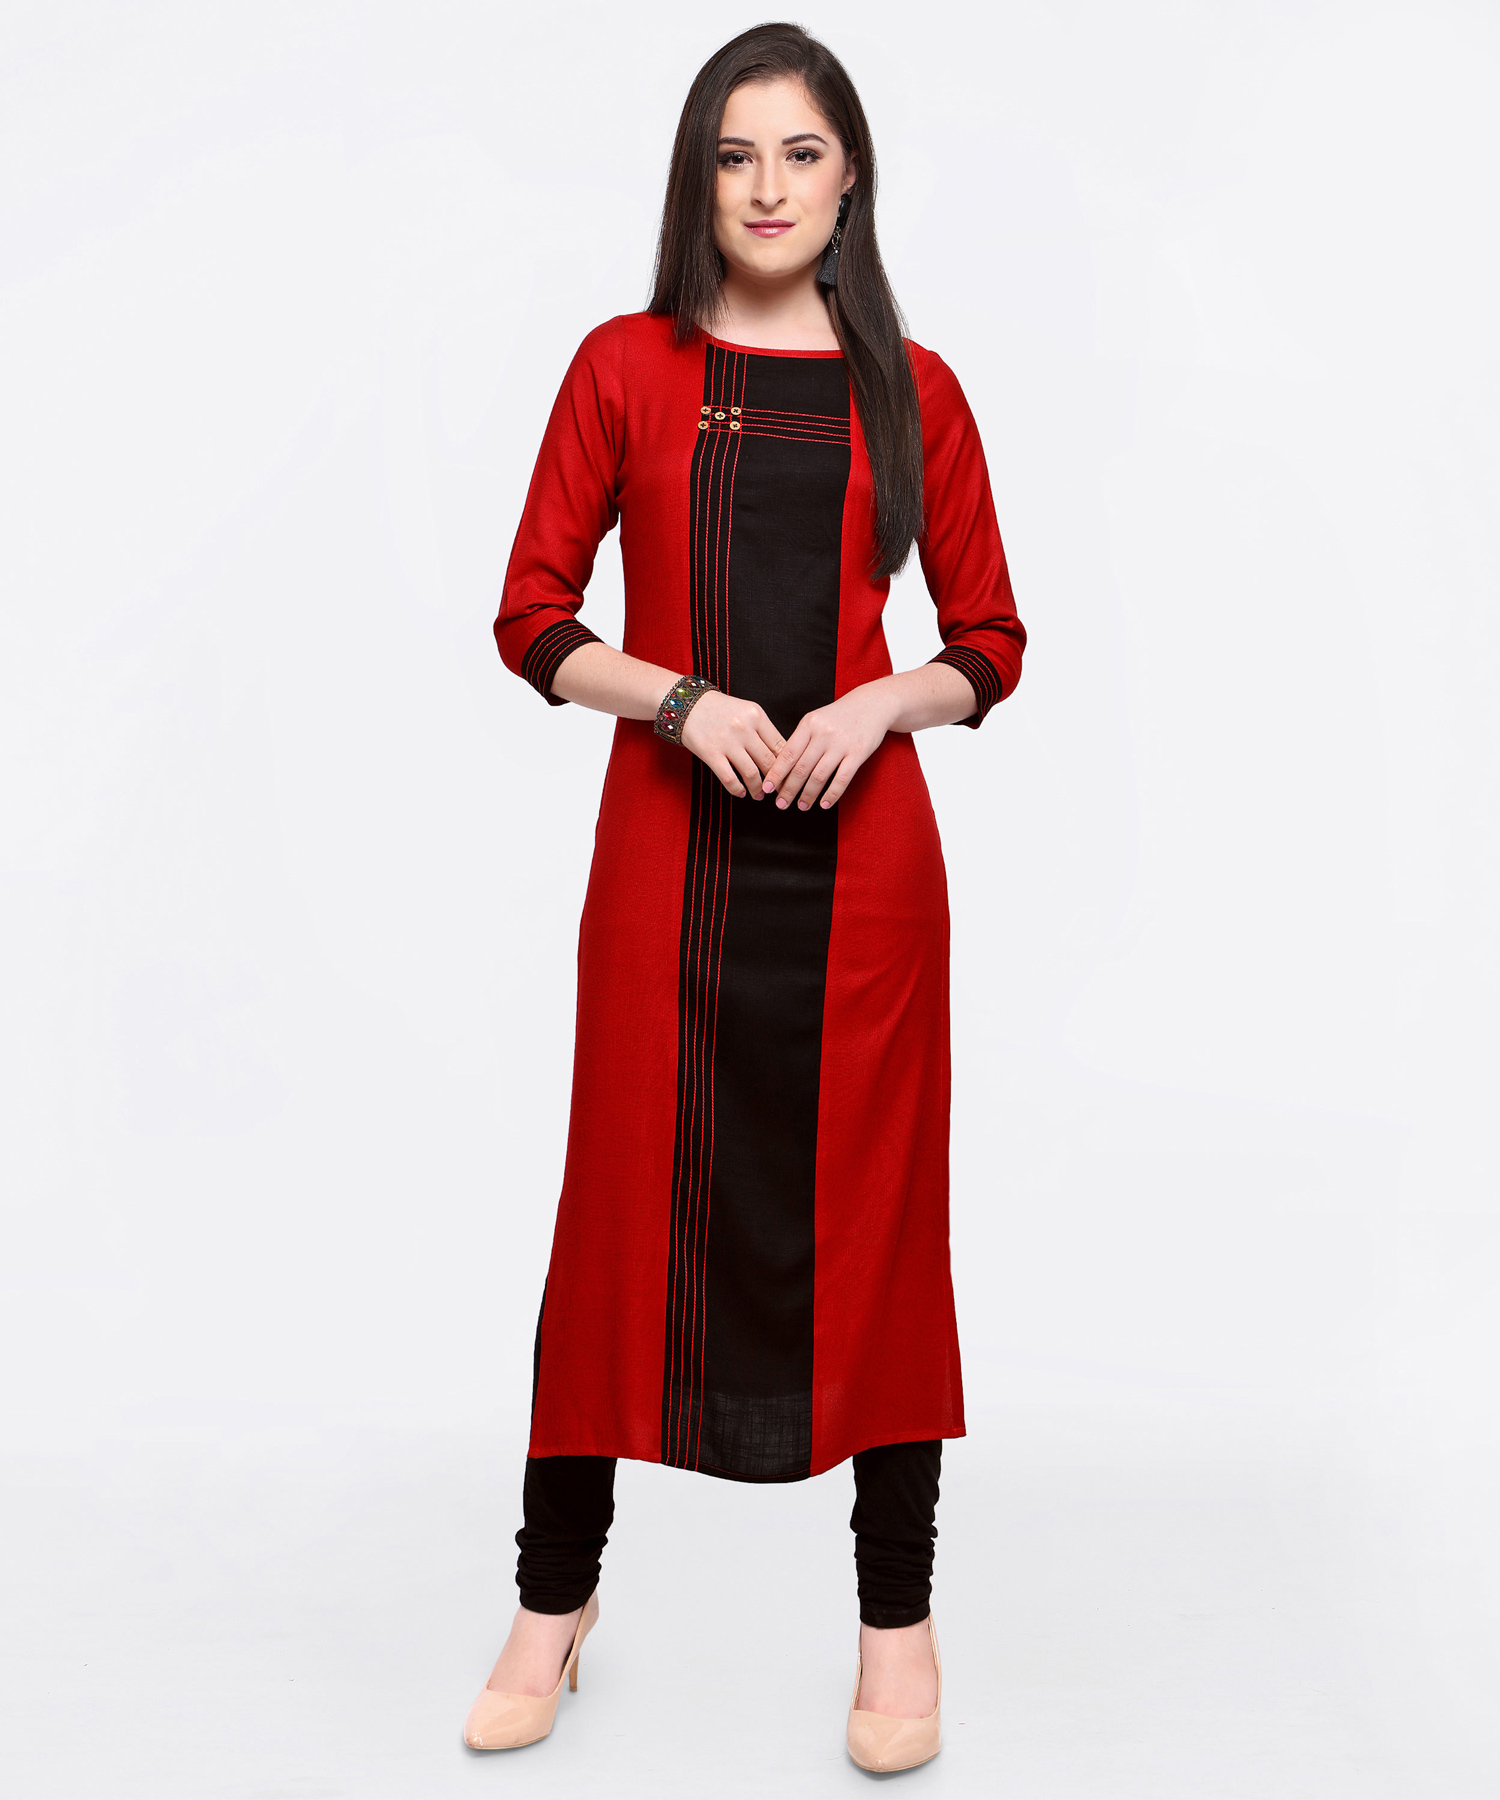 Ravishing Red-Black Colored Fancy Designer Cotton Slub Kurti